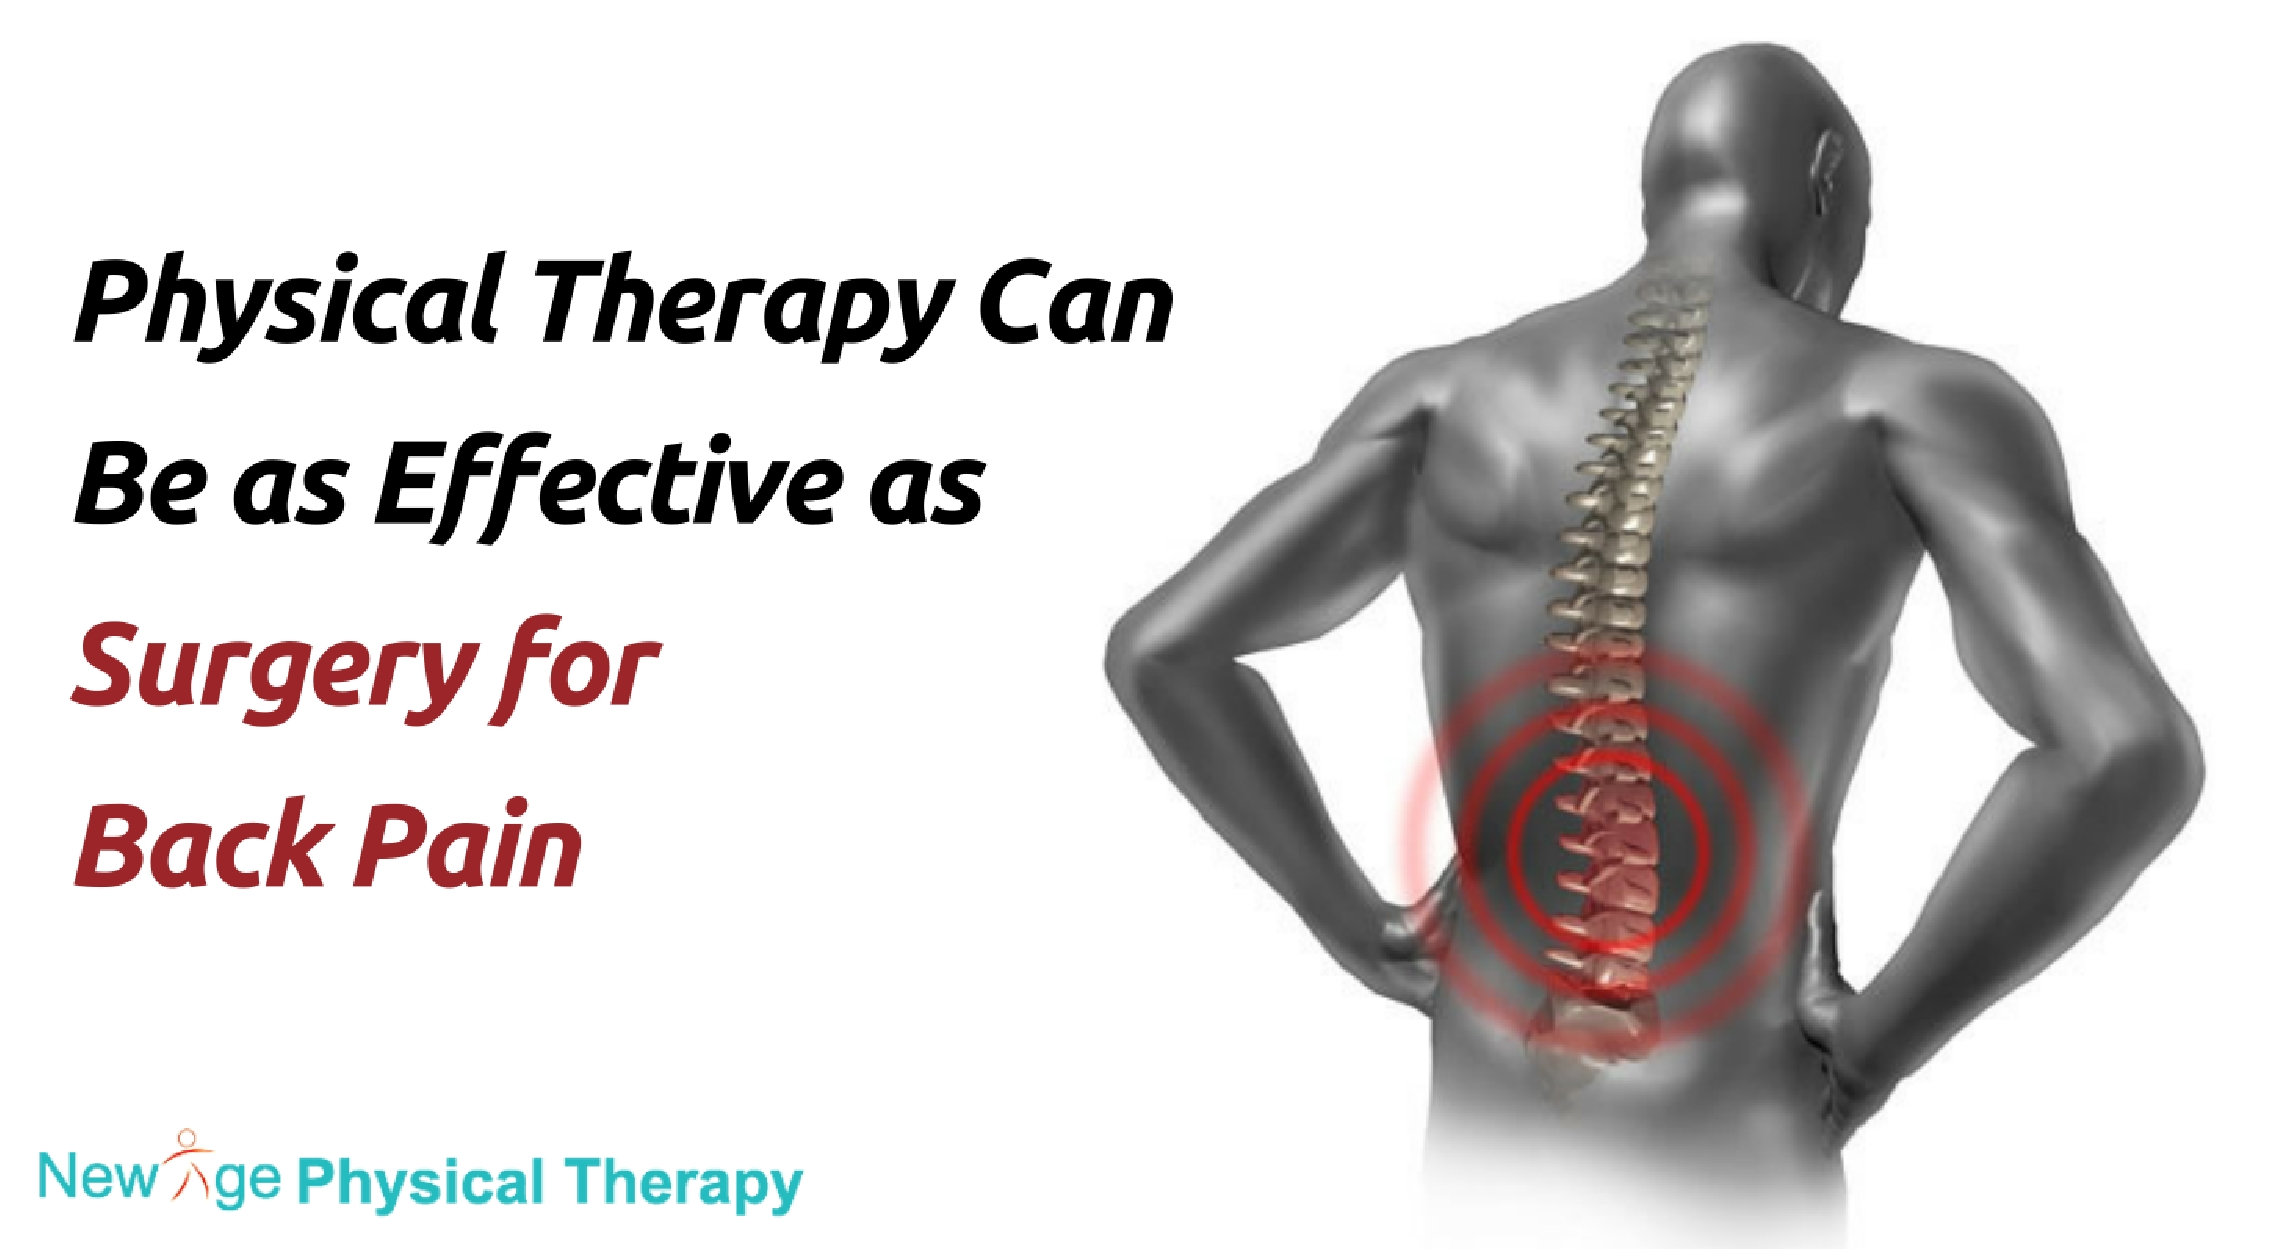 Physical Therapy Can Be as Effective as Surgery for Back Pain